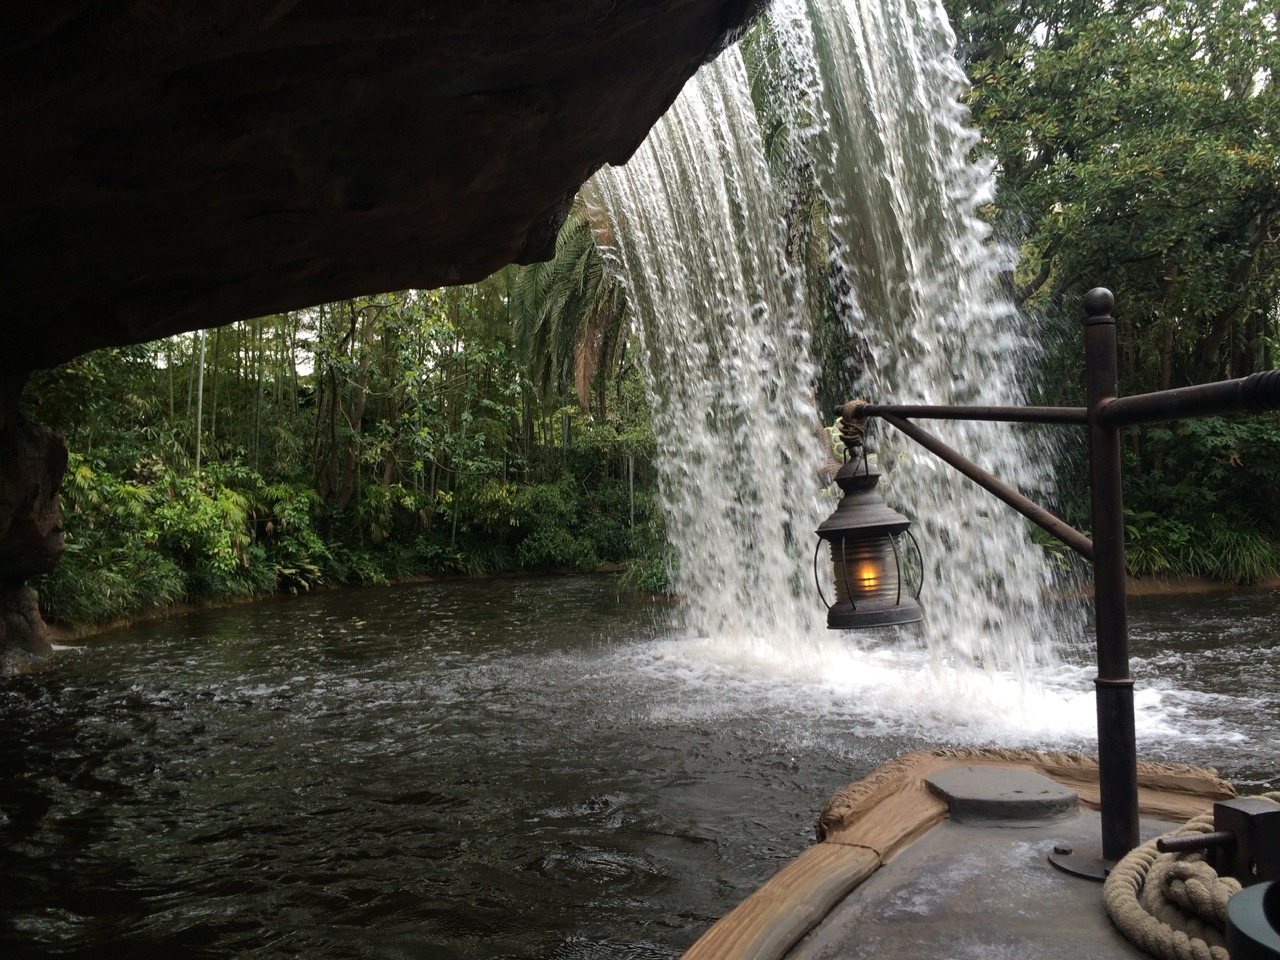 Backside of water at Jungle Cruise in Tokyo Disneyland. Photo by J. Jeff Kober.